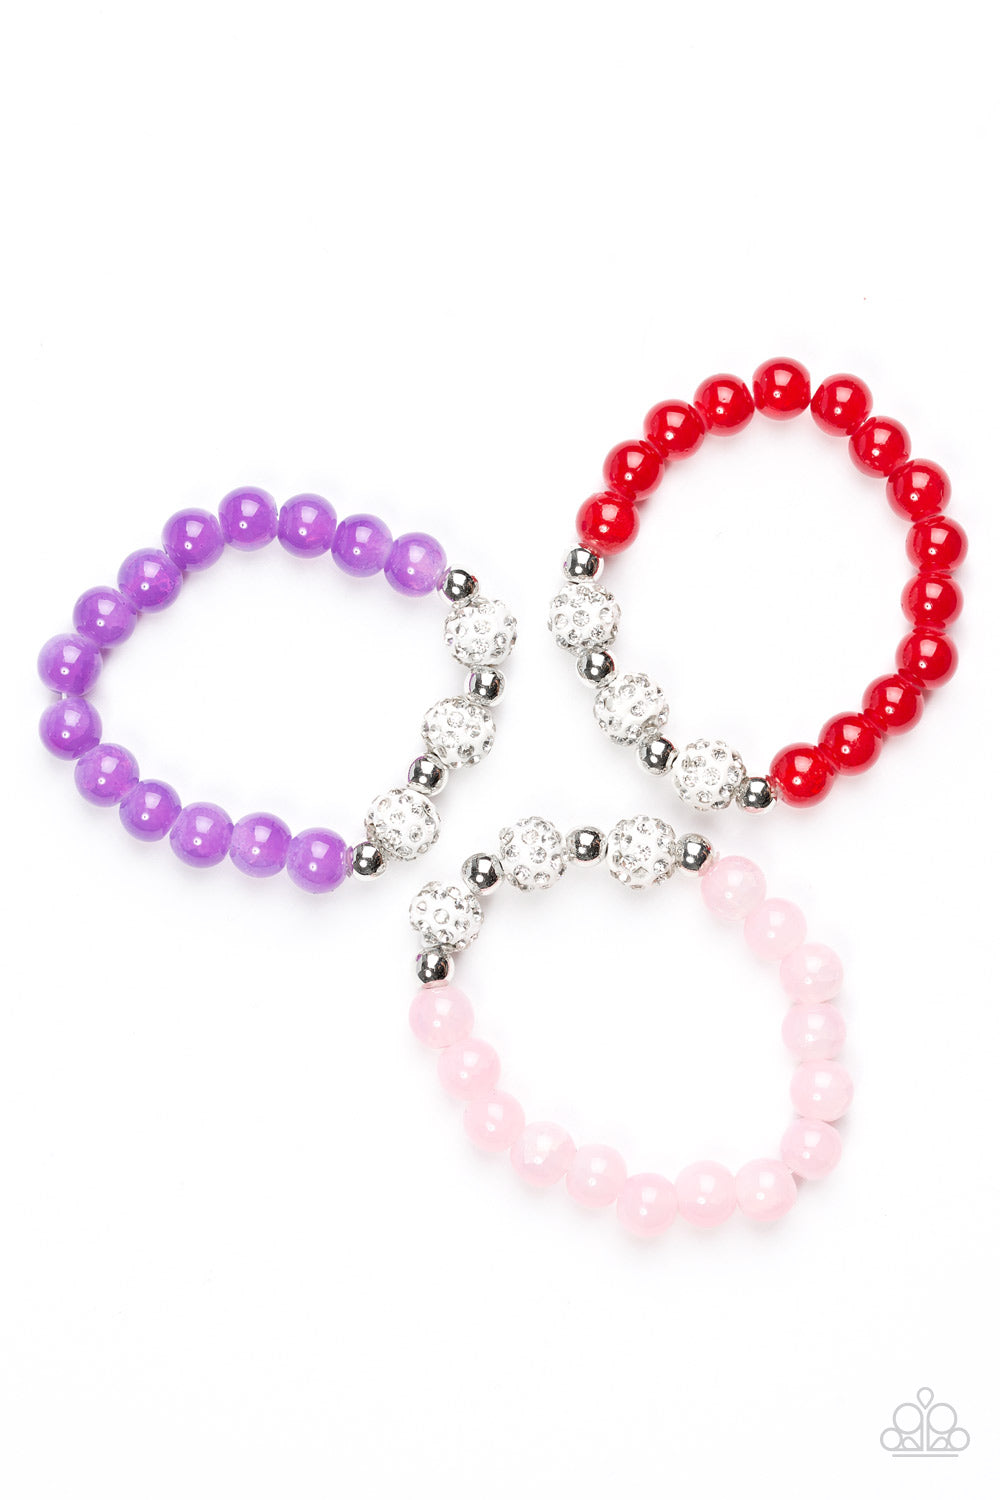 Sparkly Bead Bracelets - Paparazzi Starlet Shimmer - Pink Dragon Jewels